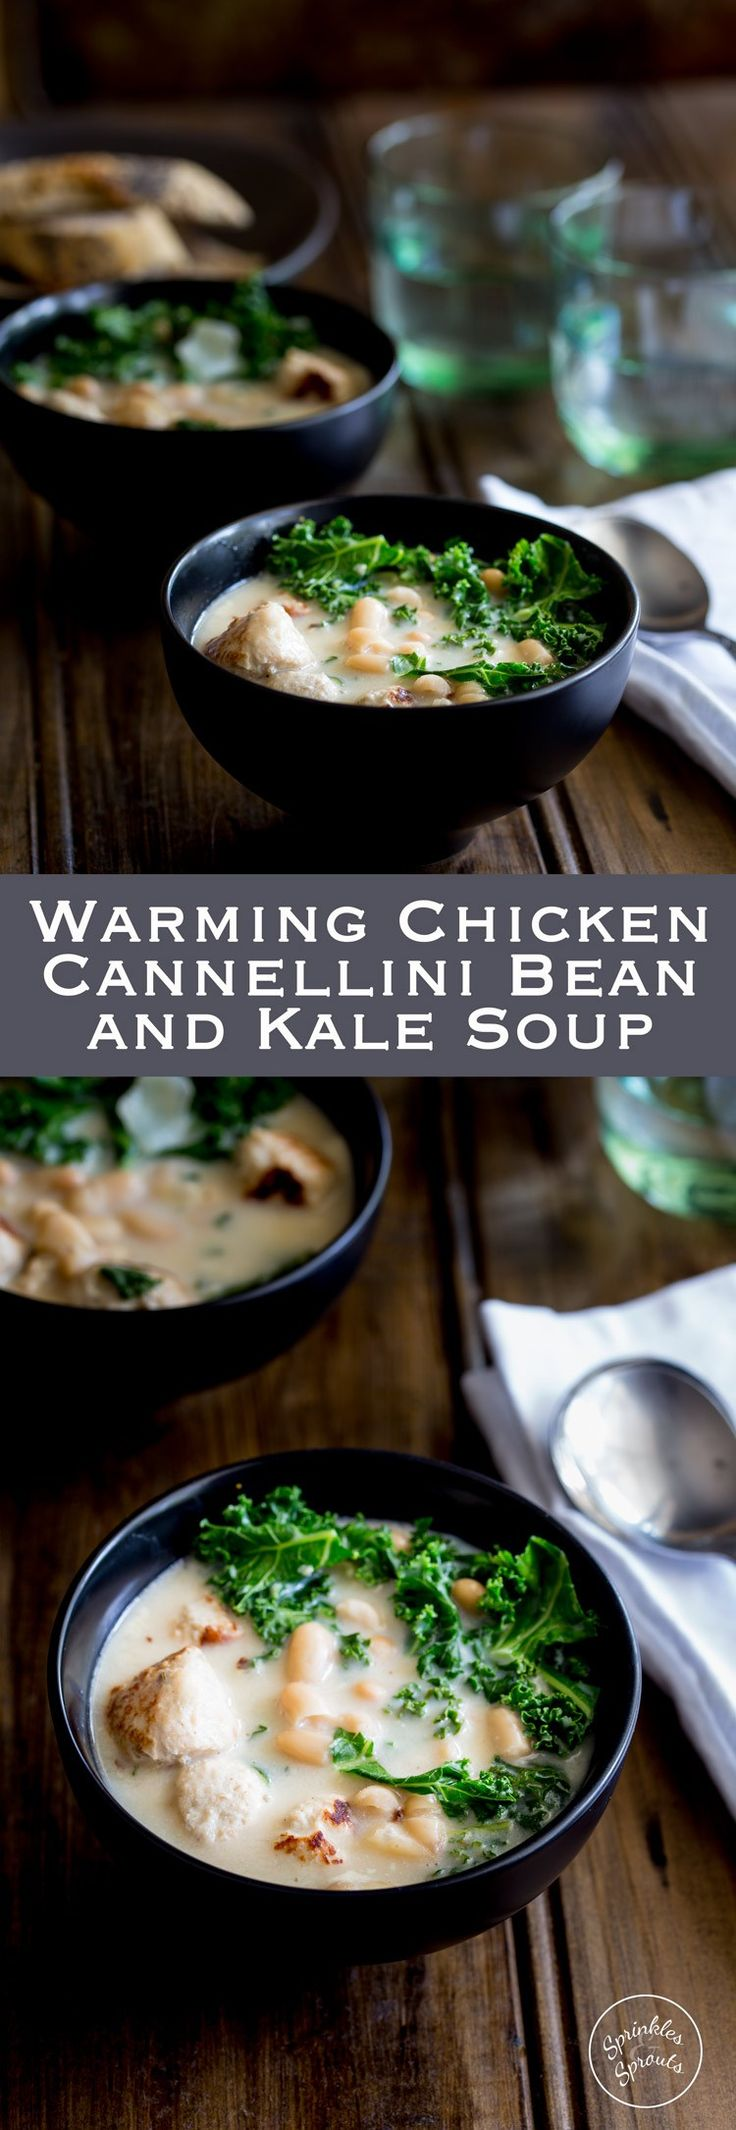 A big bowl of this Chicken, Cannellini Bean and Kale Soup is like wrapping a fleecy blanket around you and curling up on the sofa with a good book. Warm, comforting and oh so delicious! From https://www.sprinklesandsprouts.com.au